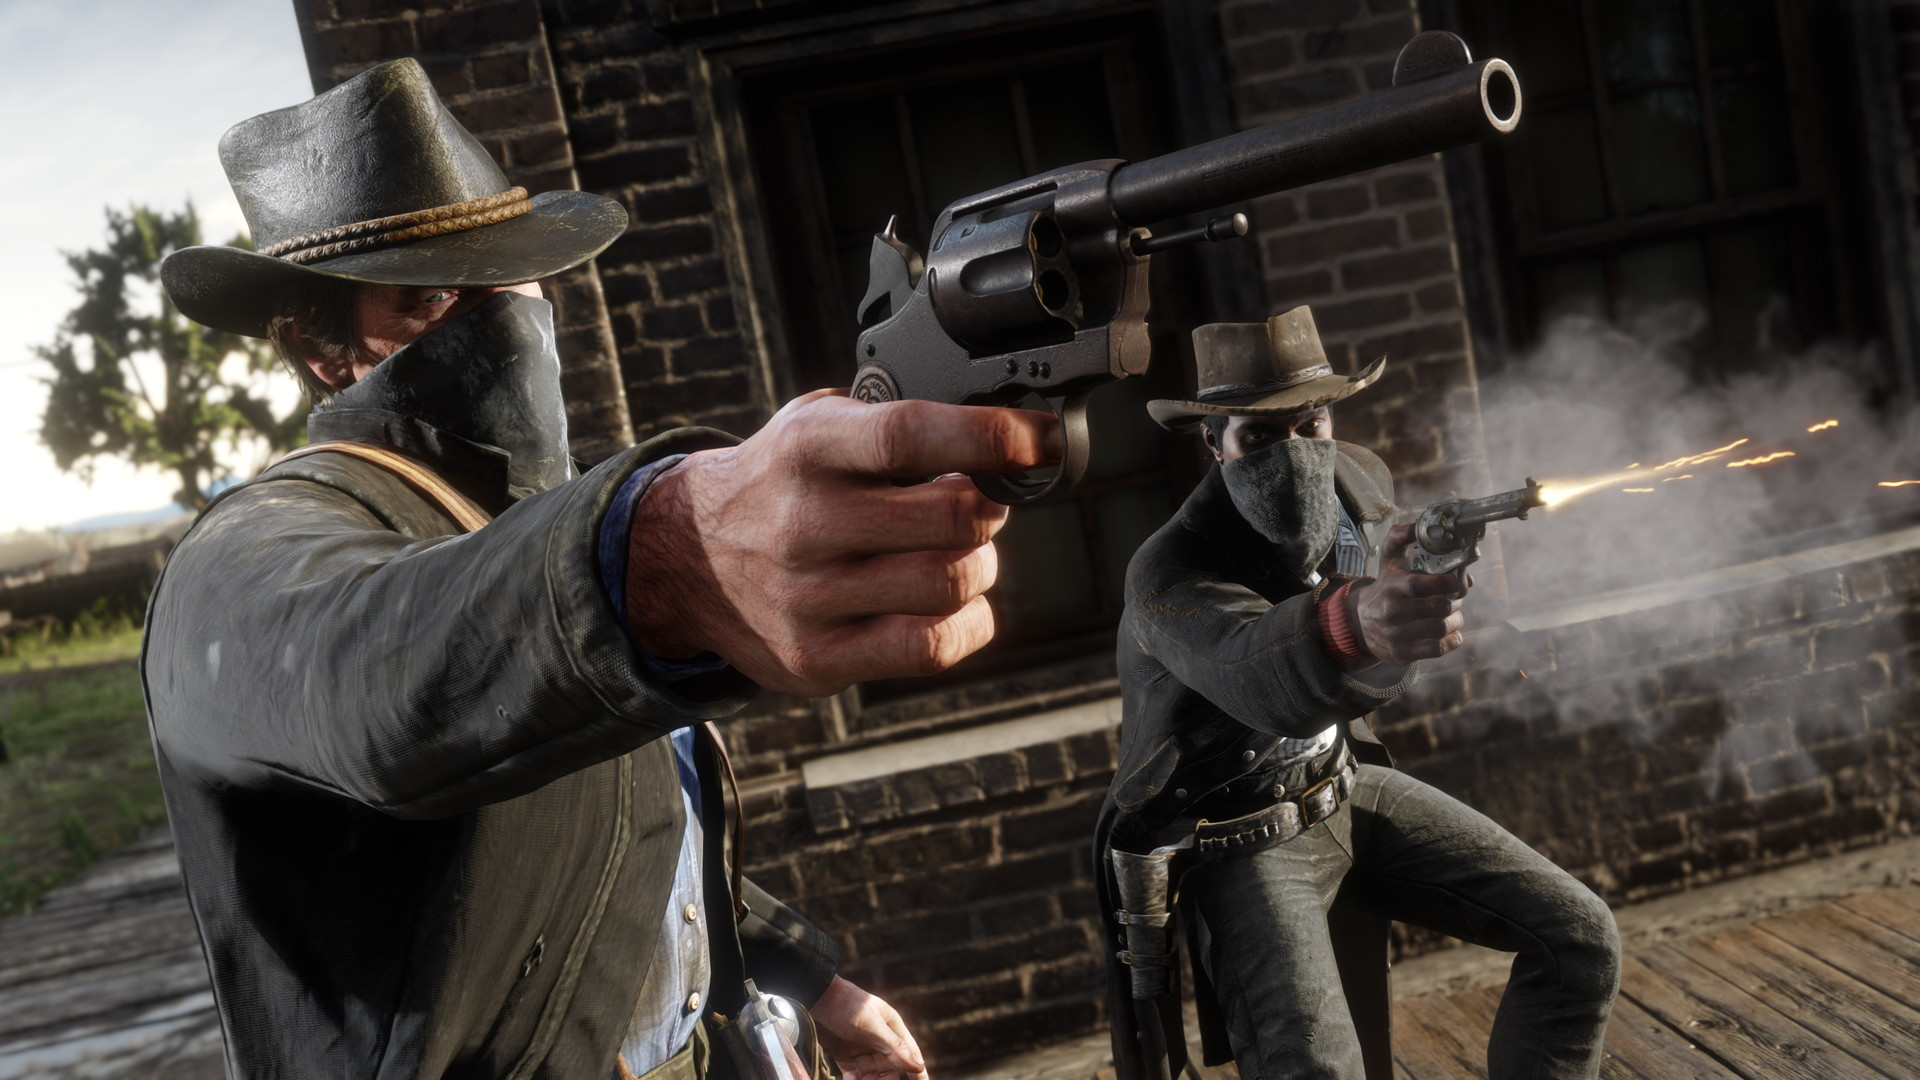 Arthur and one of the Van der Linde Gang take part in a robbery.